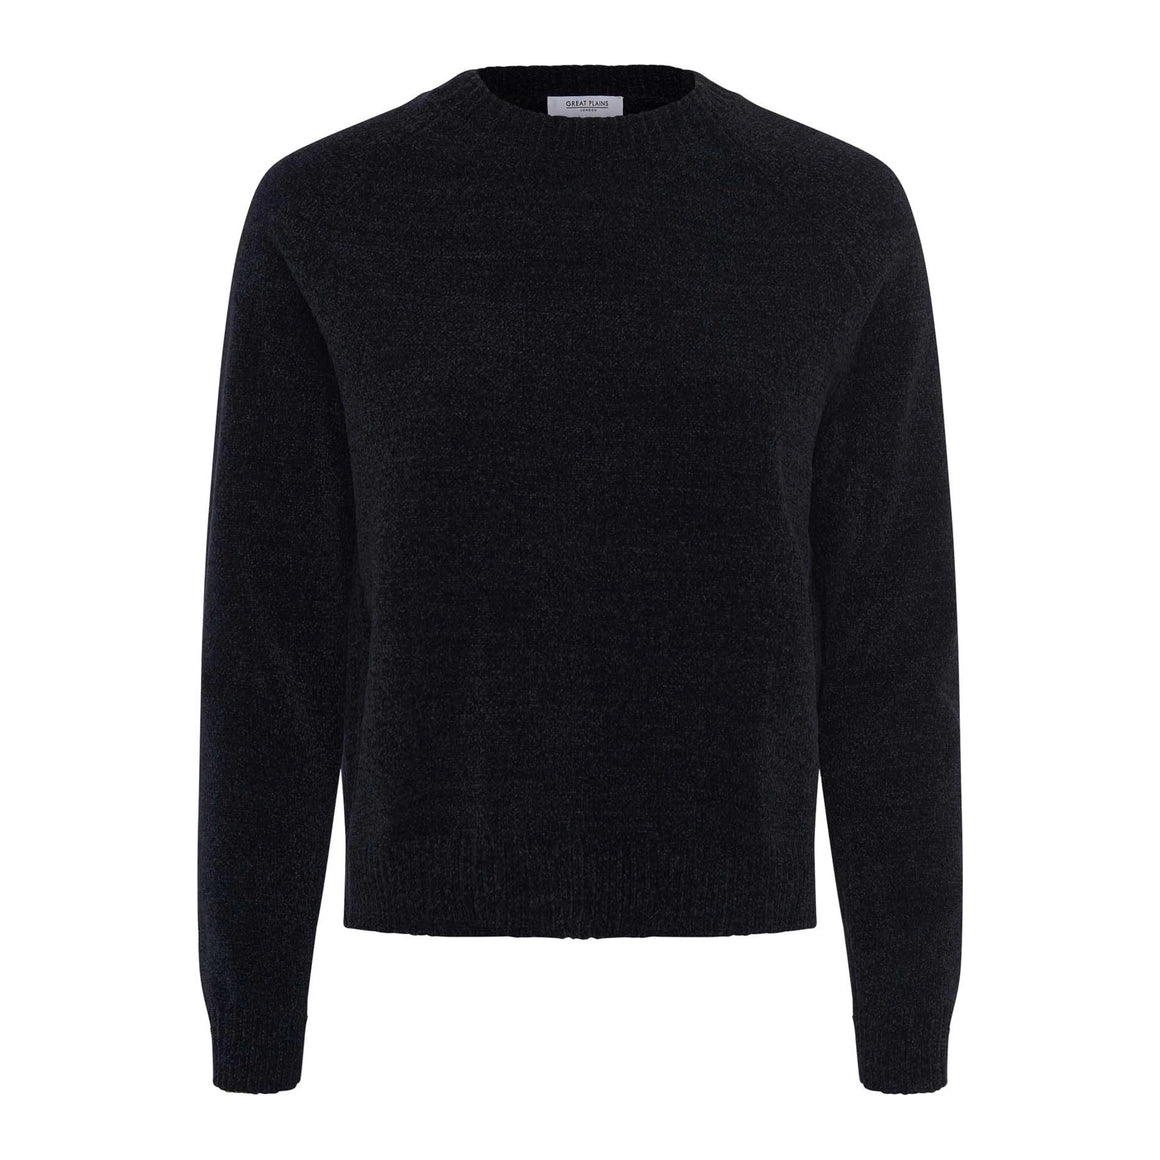 Bethan Chanile Knit for Women in Black